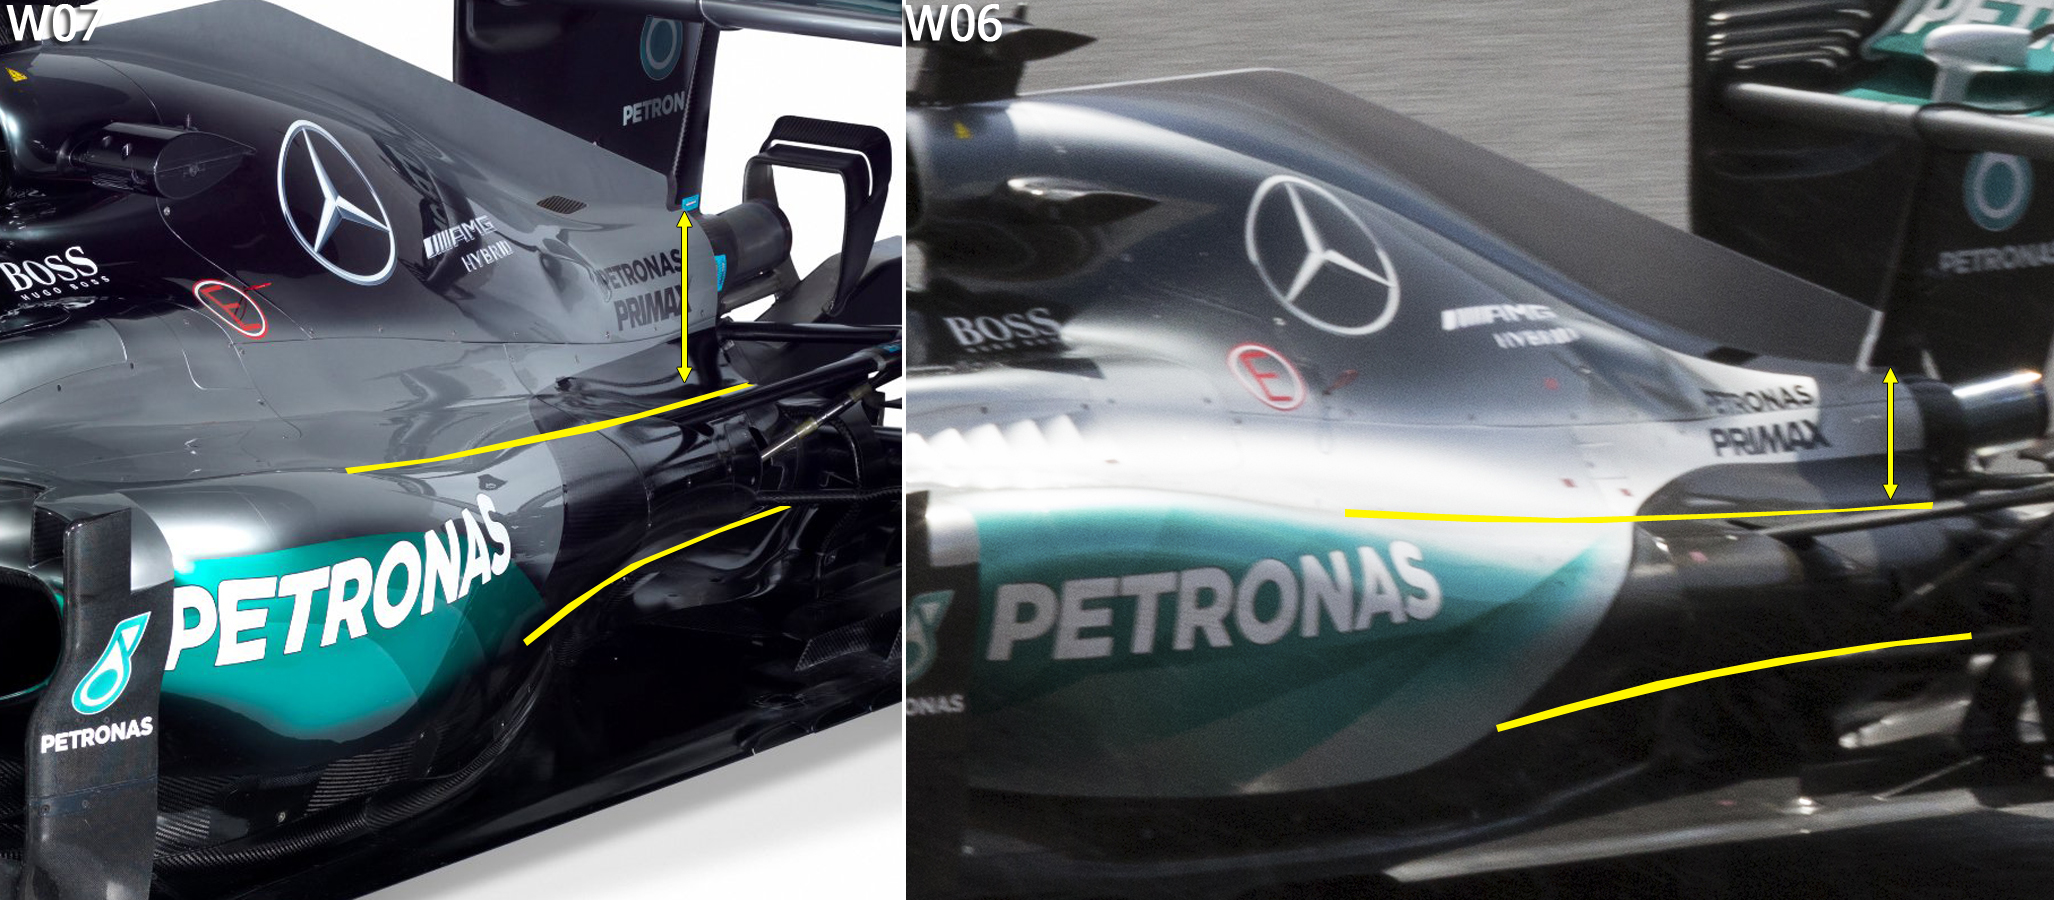 w07-cover-engine